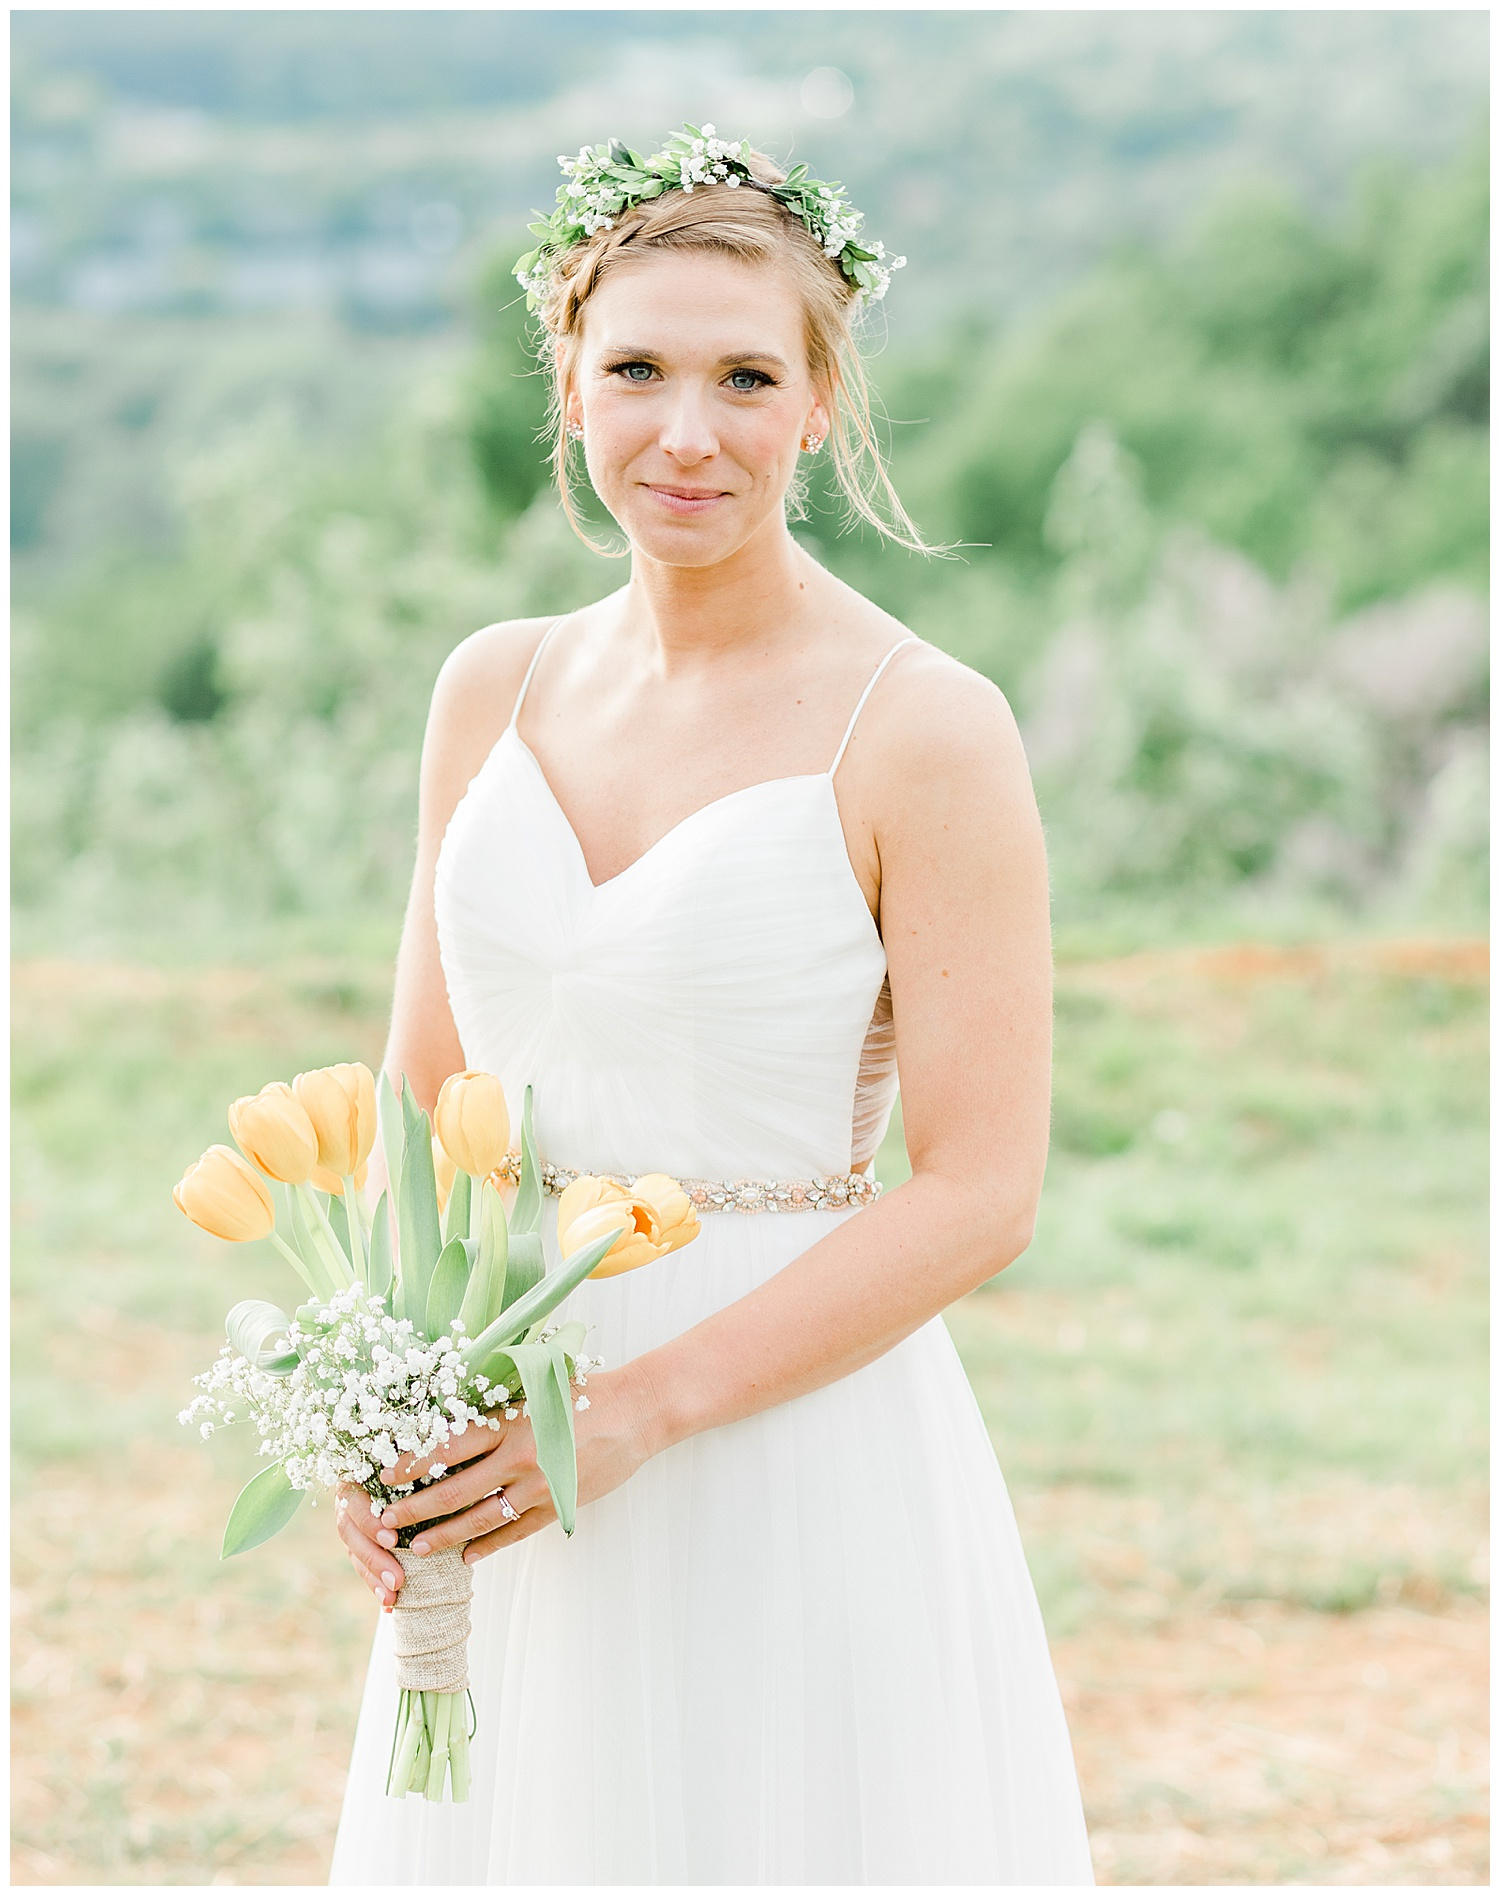 Bridal Portrait at Carter Mountain, Charlottesville, Virginia